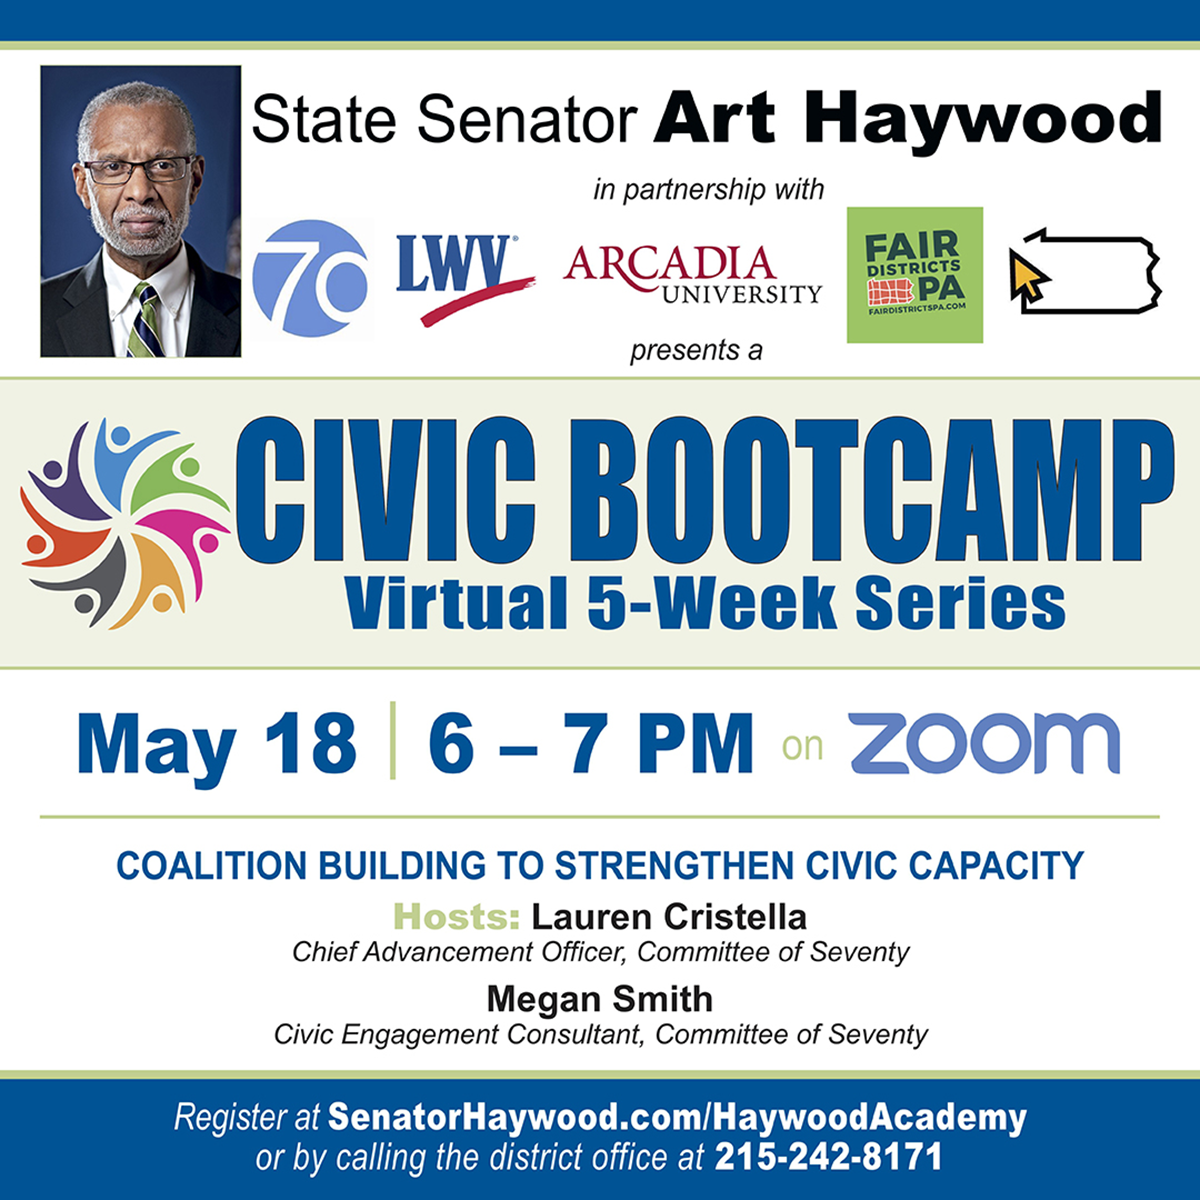 Civic Bootcamp - Coalition Building to Strengthen Civic Capacity